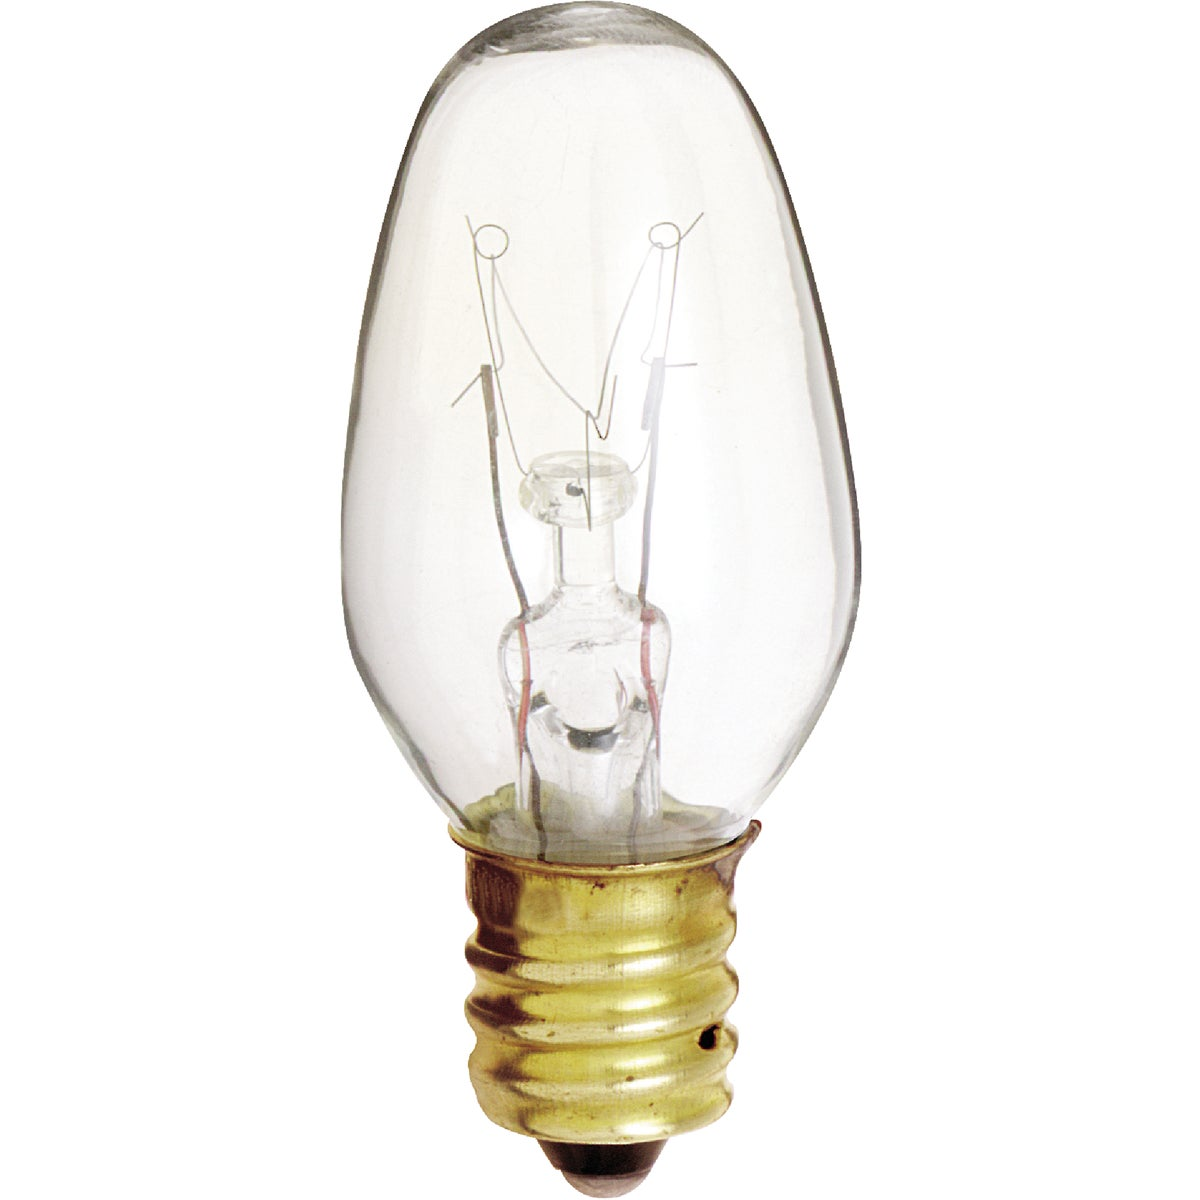 4W CLR NIGHT LIGHT BULB - 20572 by G E Lighting